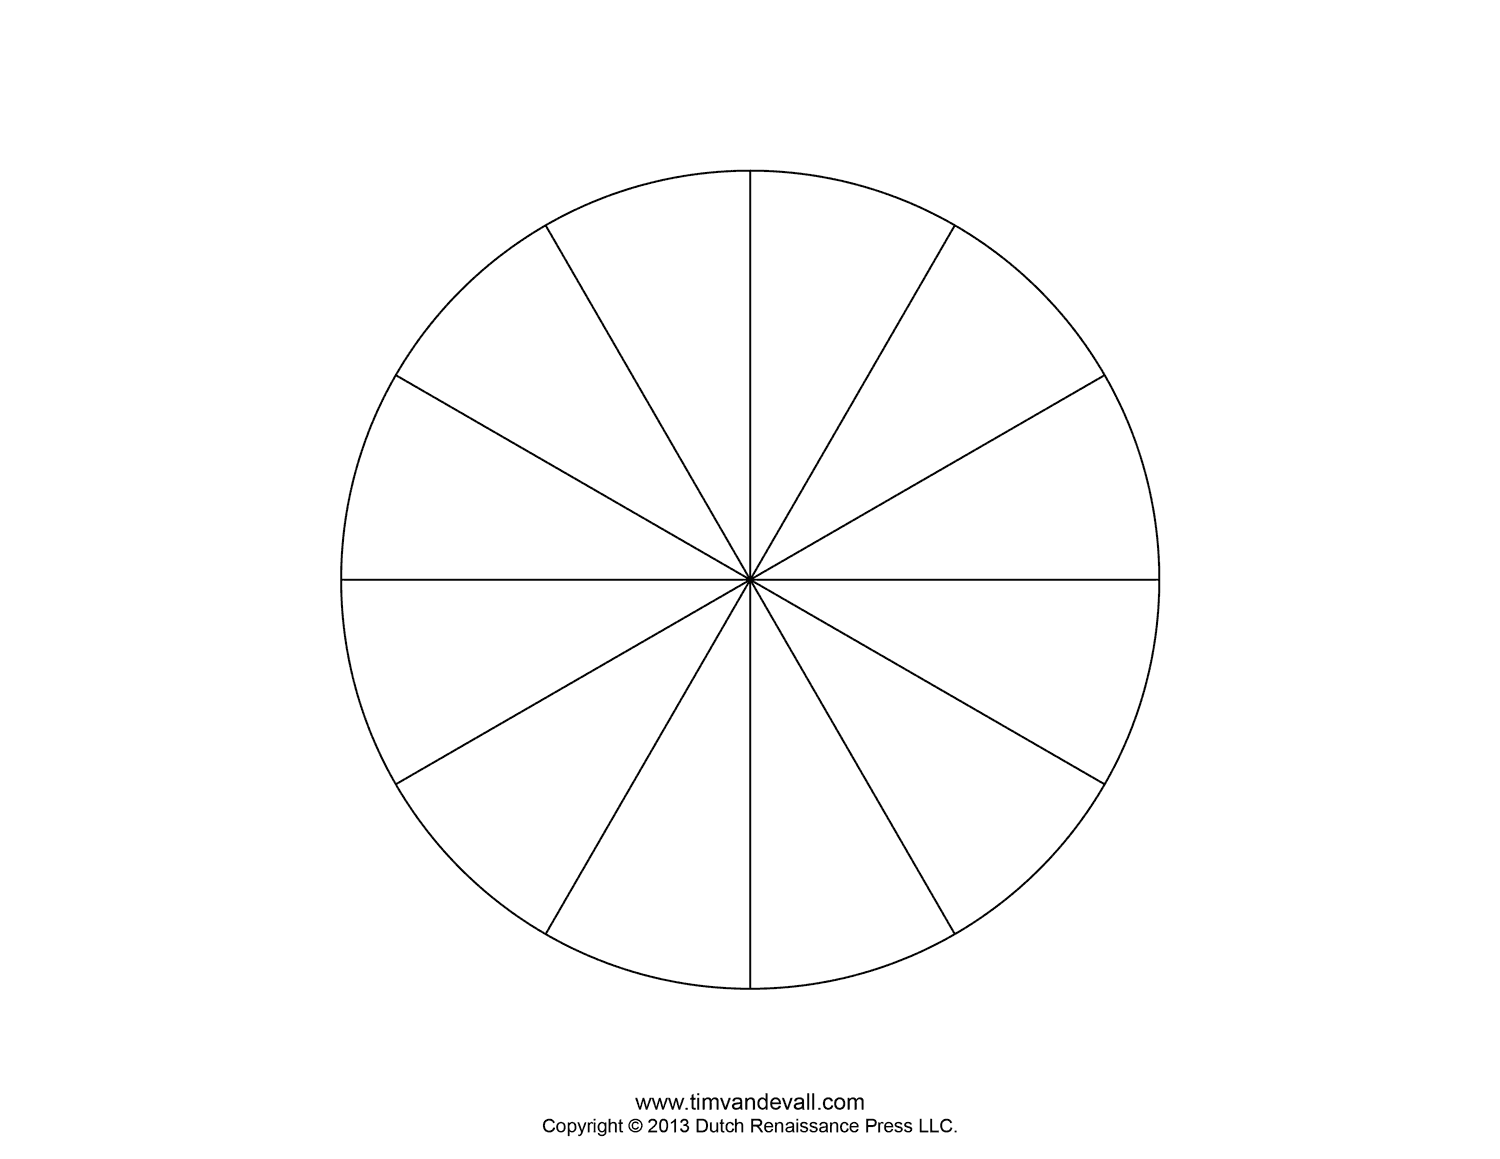 blank pie chart templates | make a pie chart